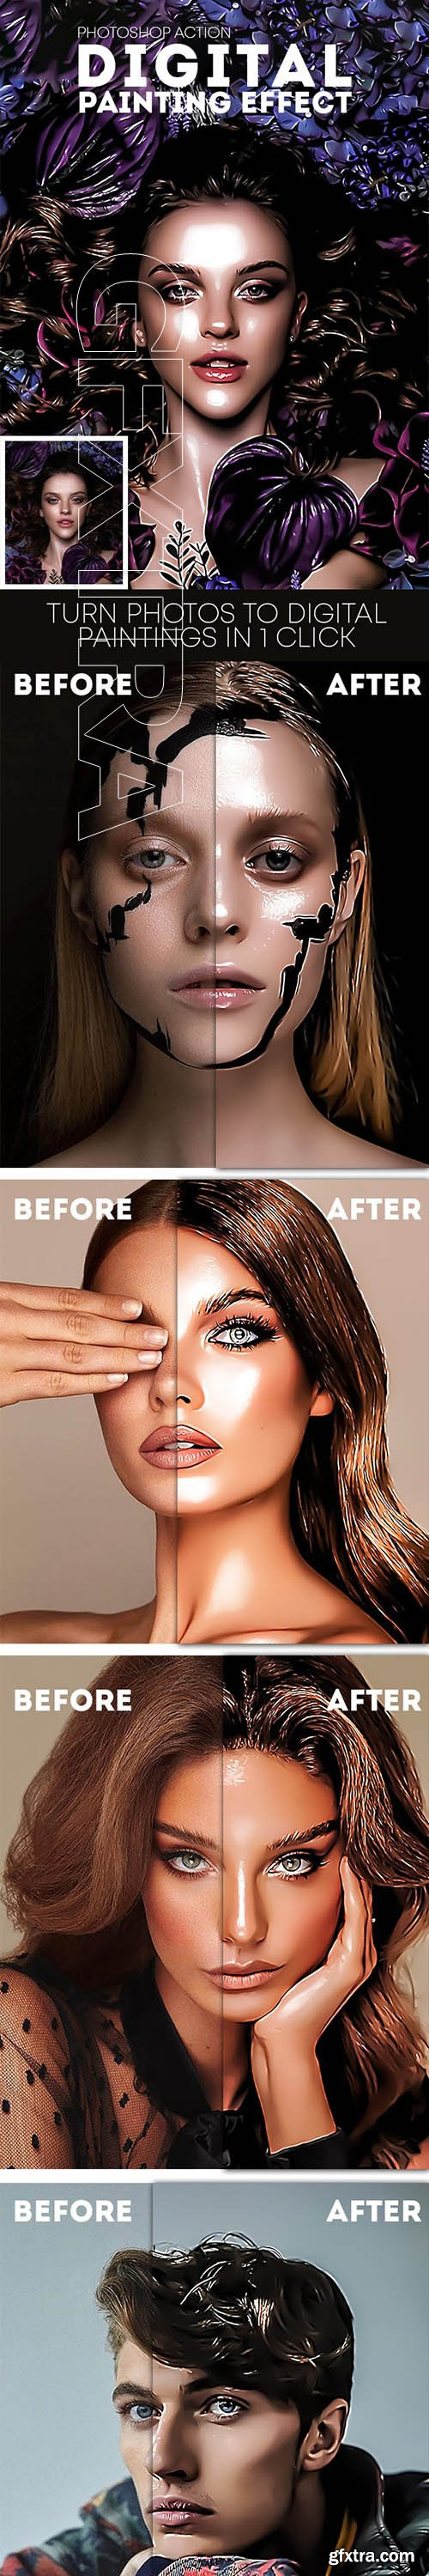 GraphicRiver - Digital Painting Effect 24207105